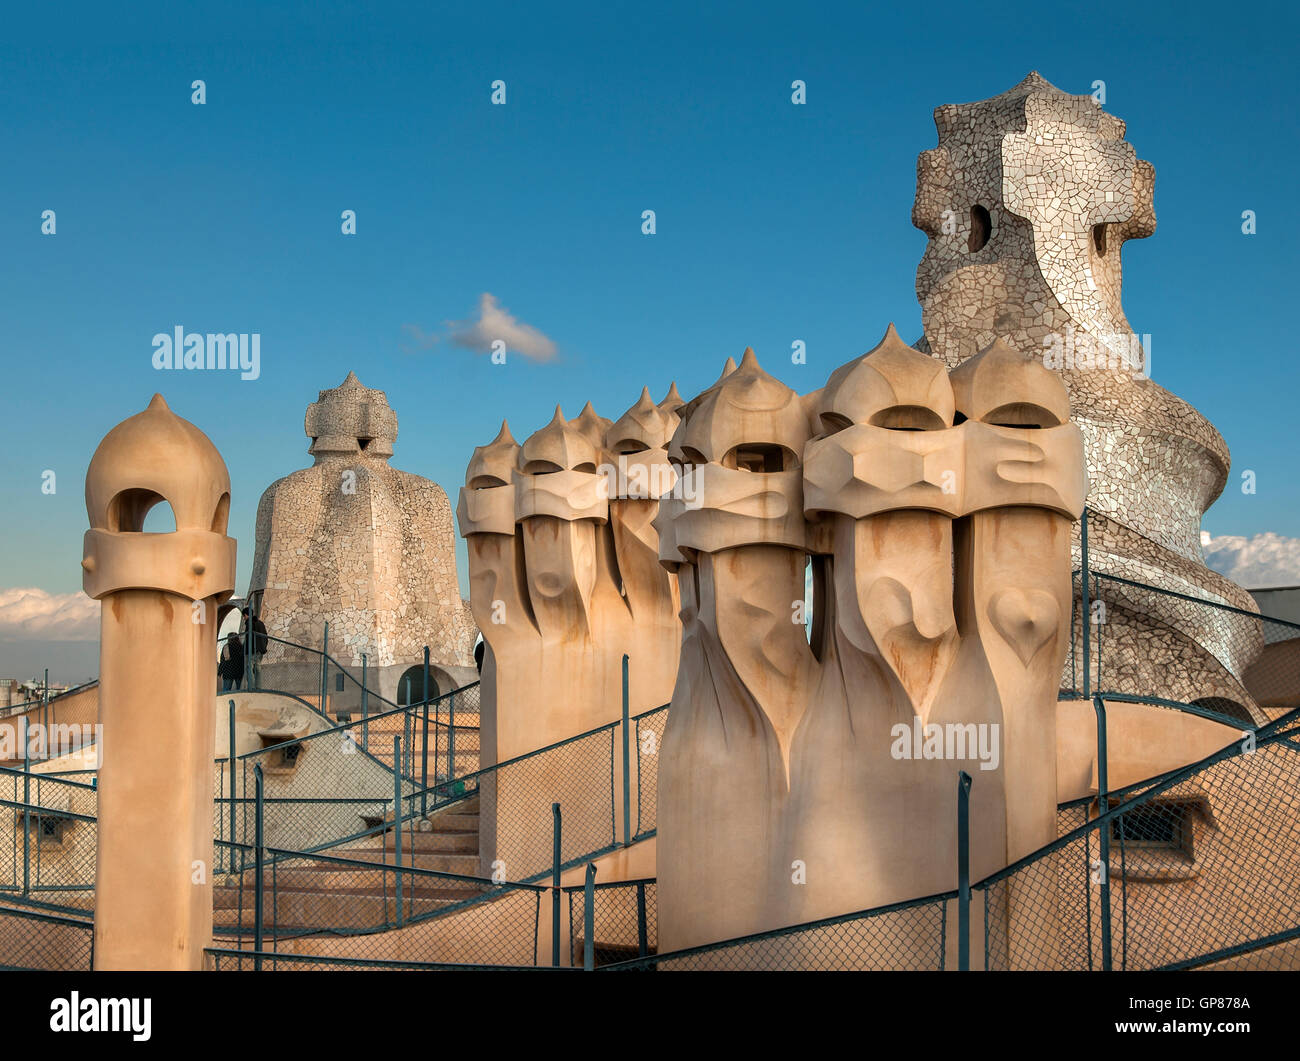 Gaudi Chimney Stock Photos Gaudi Chimney Stock Images Alamy